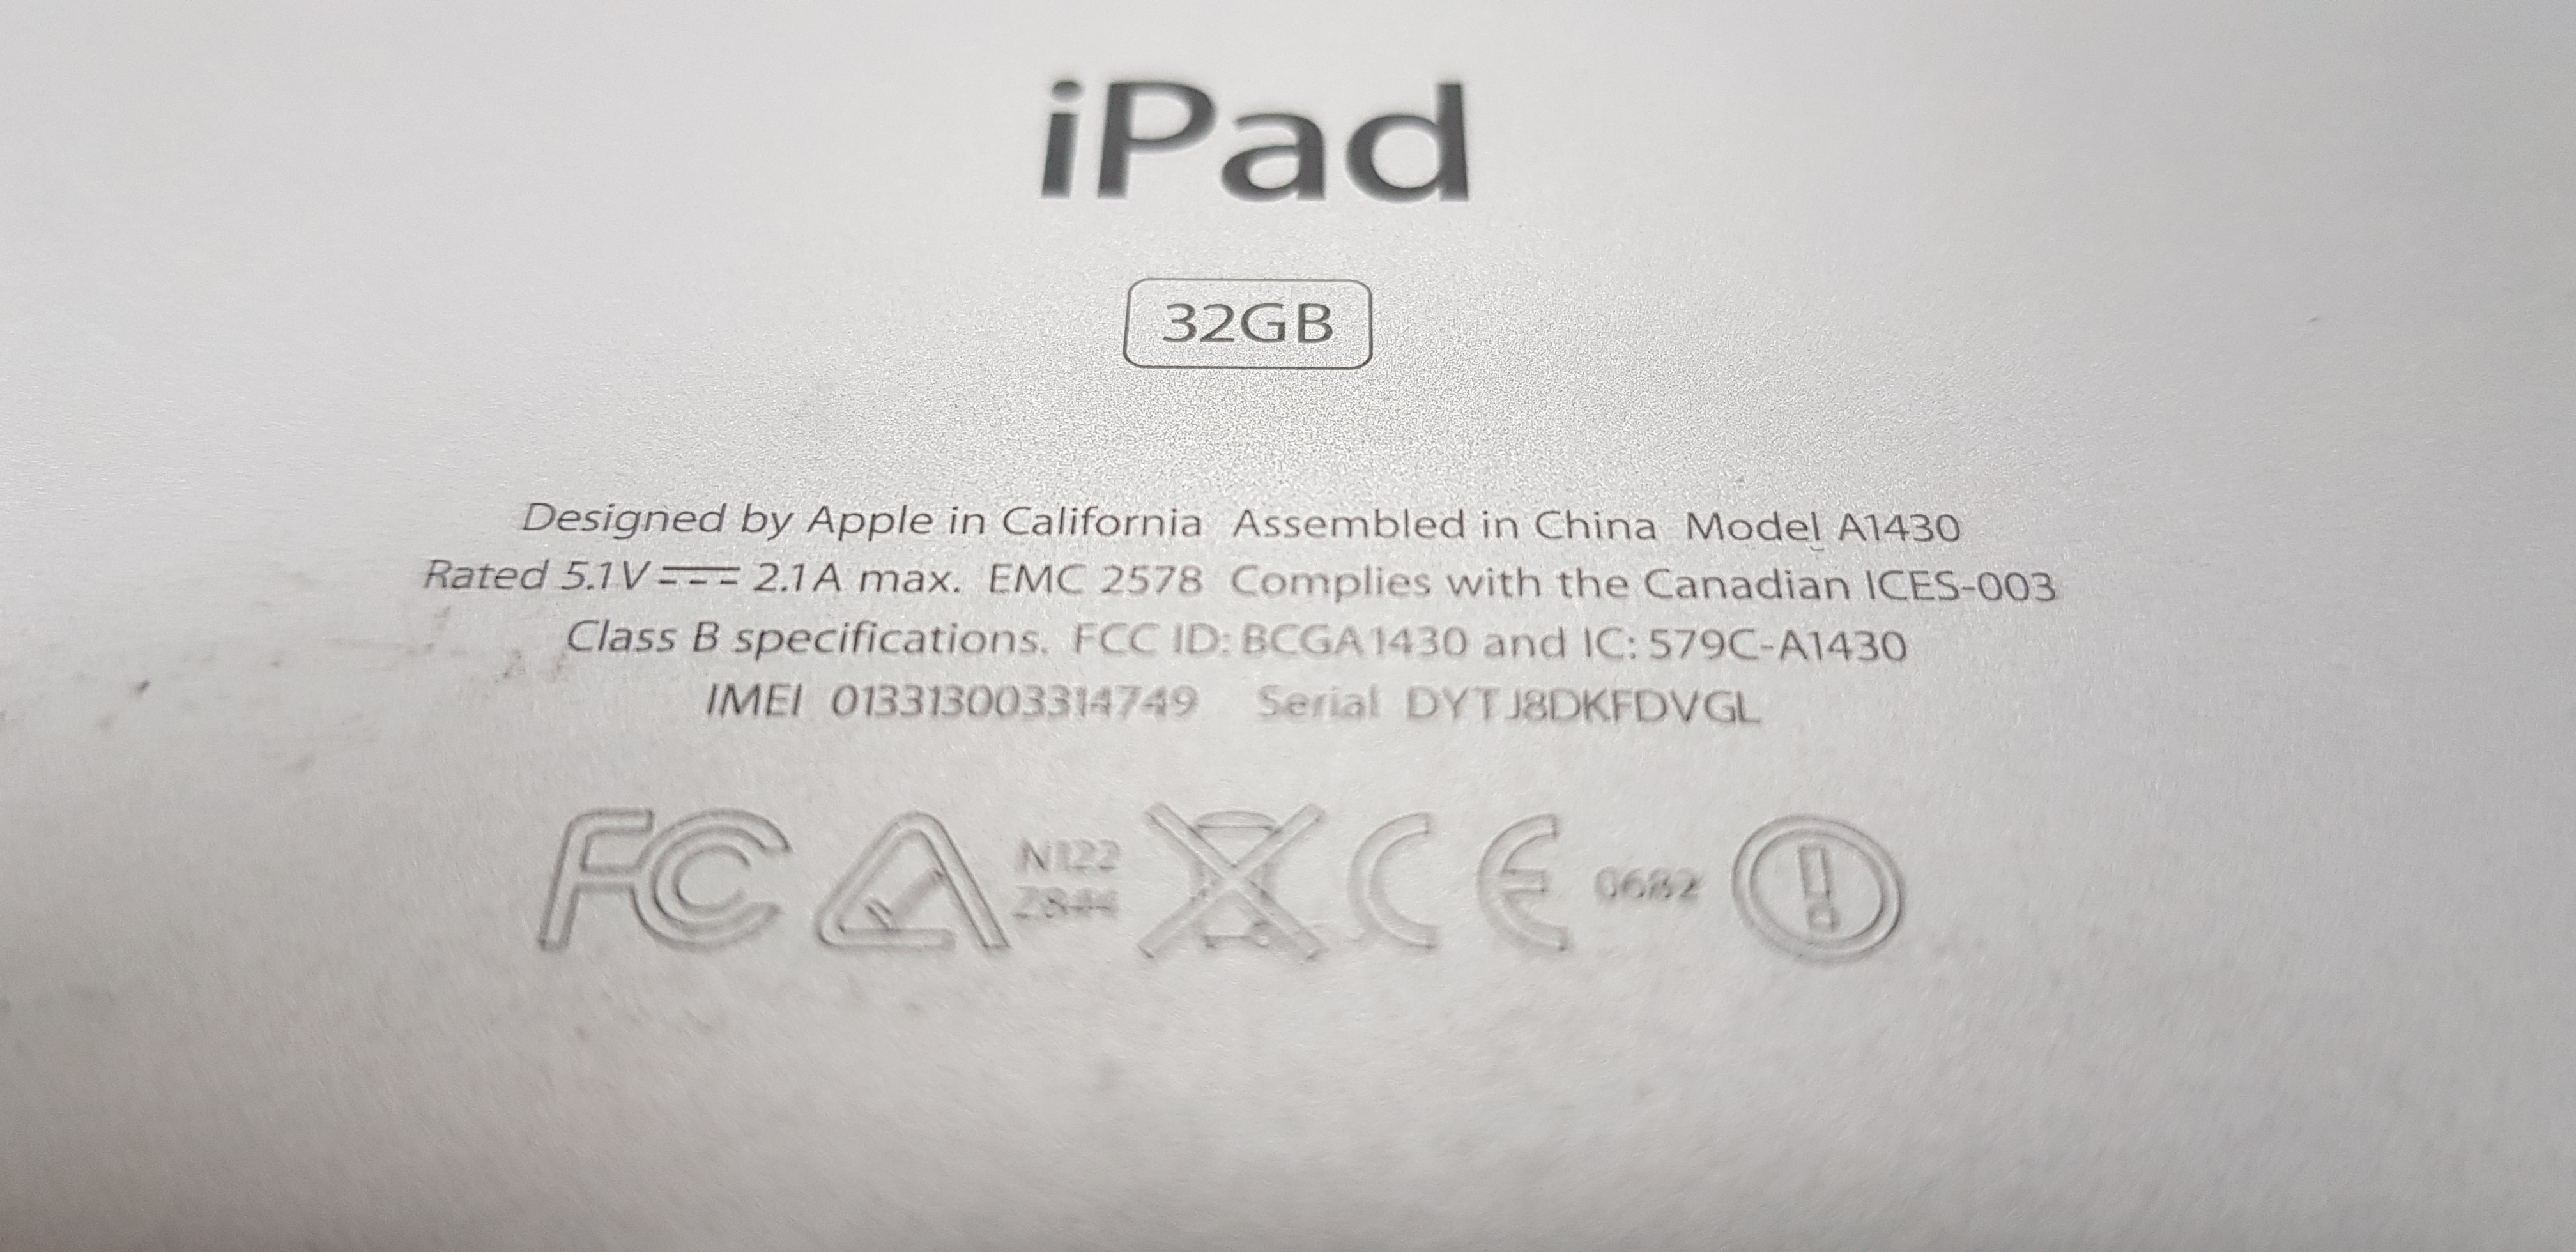 Apple Ipad with Cellular support